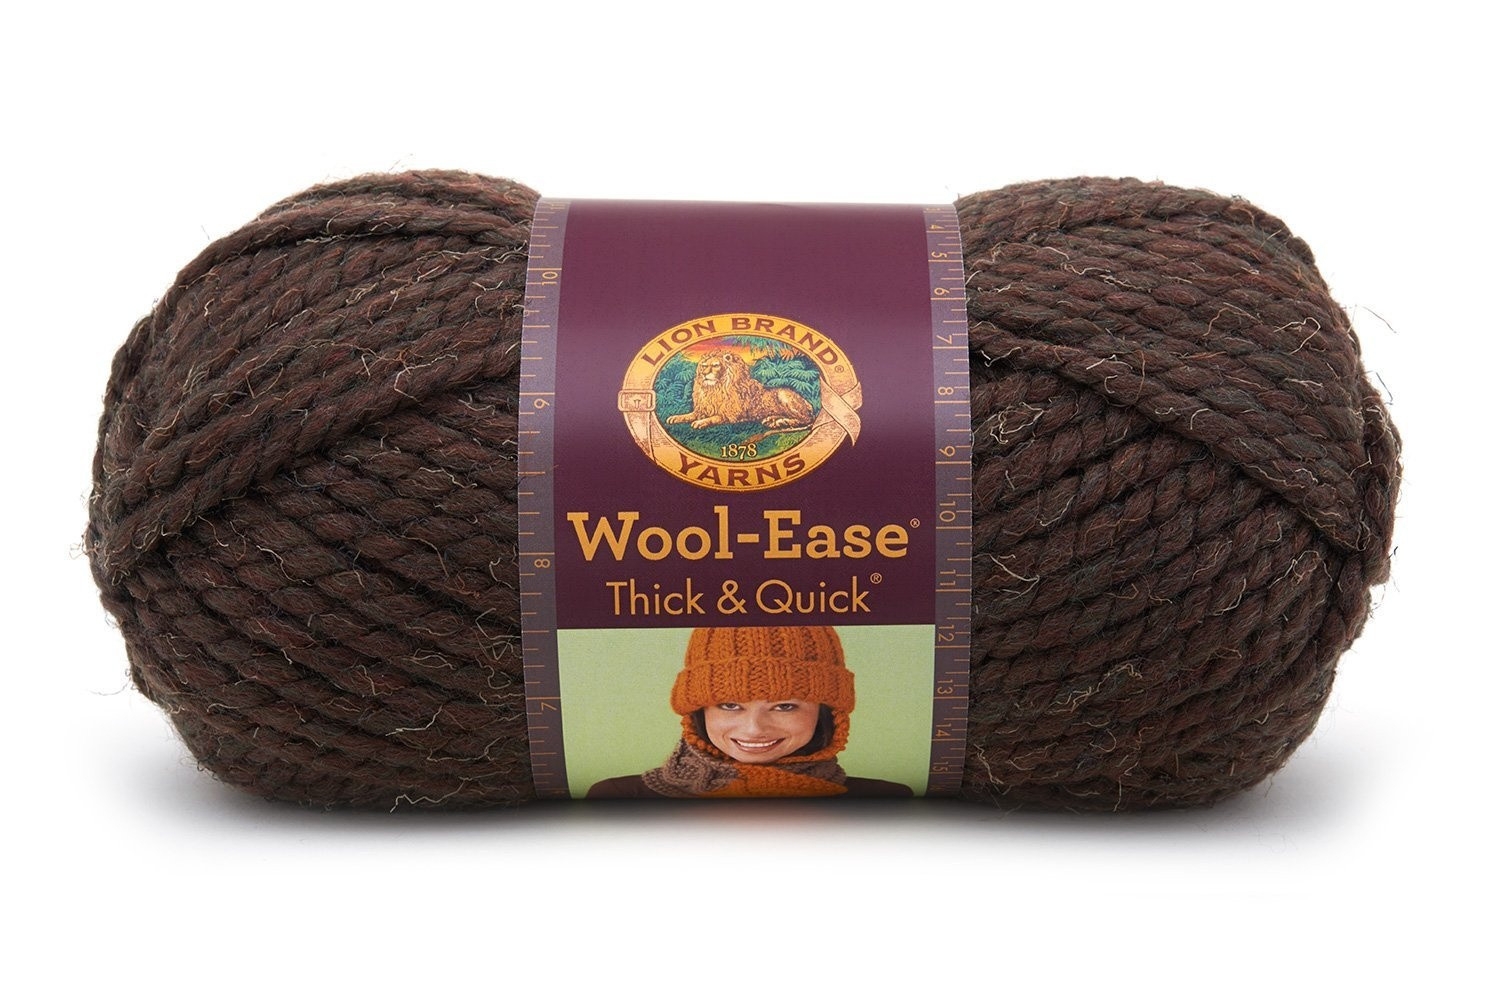 Wool Ease Thick & Quick Yarn Best Of Lion Brand Yarn 640 136f Wool Ease Thick and Quick Yarn Of Great 46 Pictures Wool Ease Thick & Quick Yarn